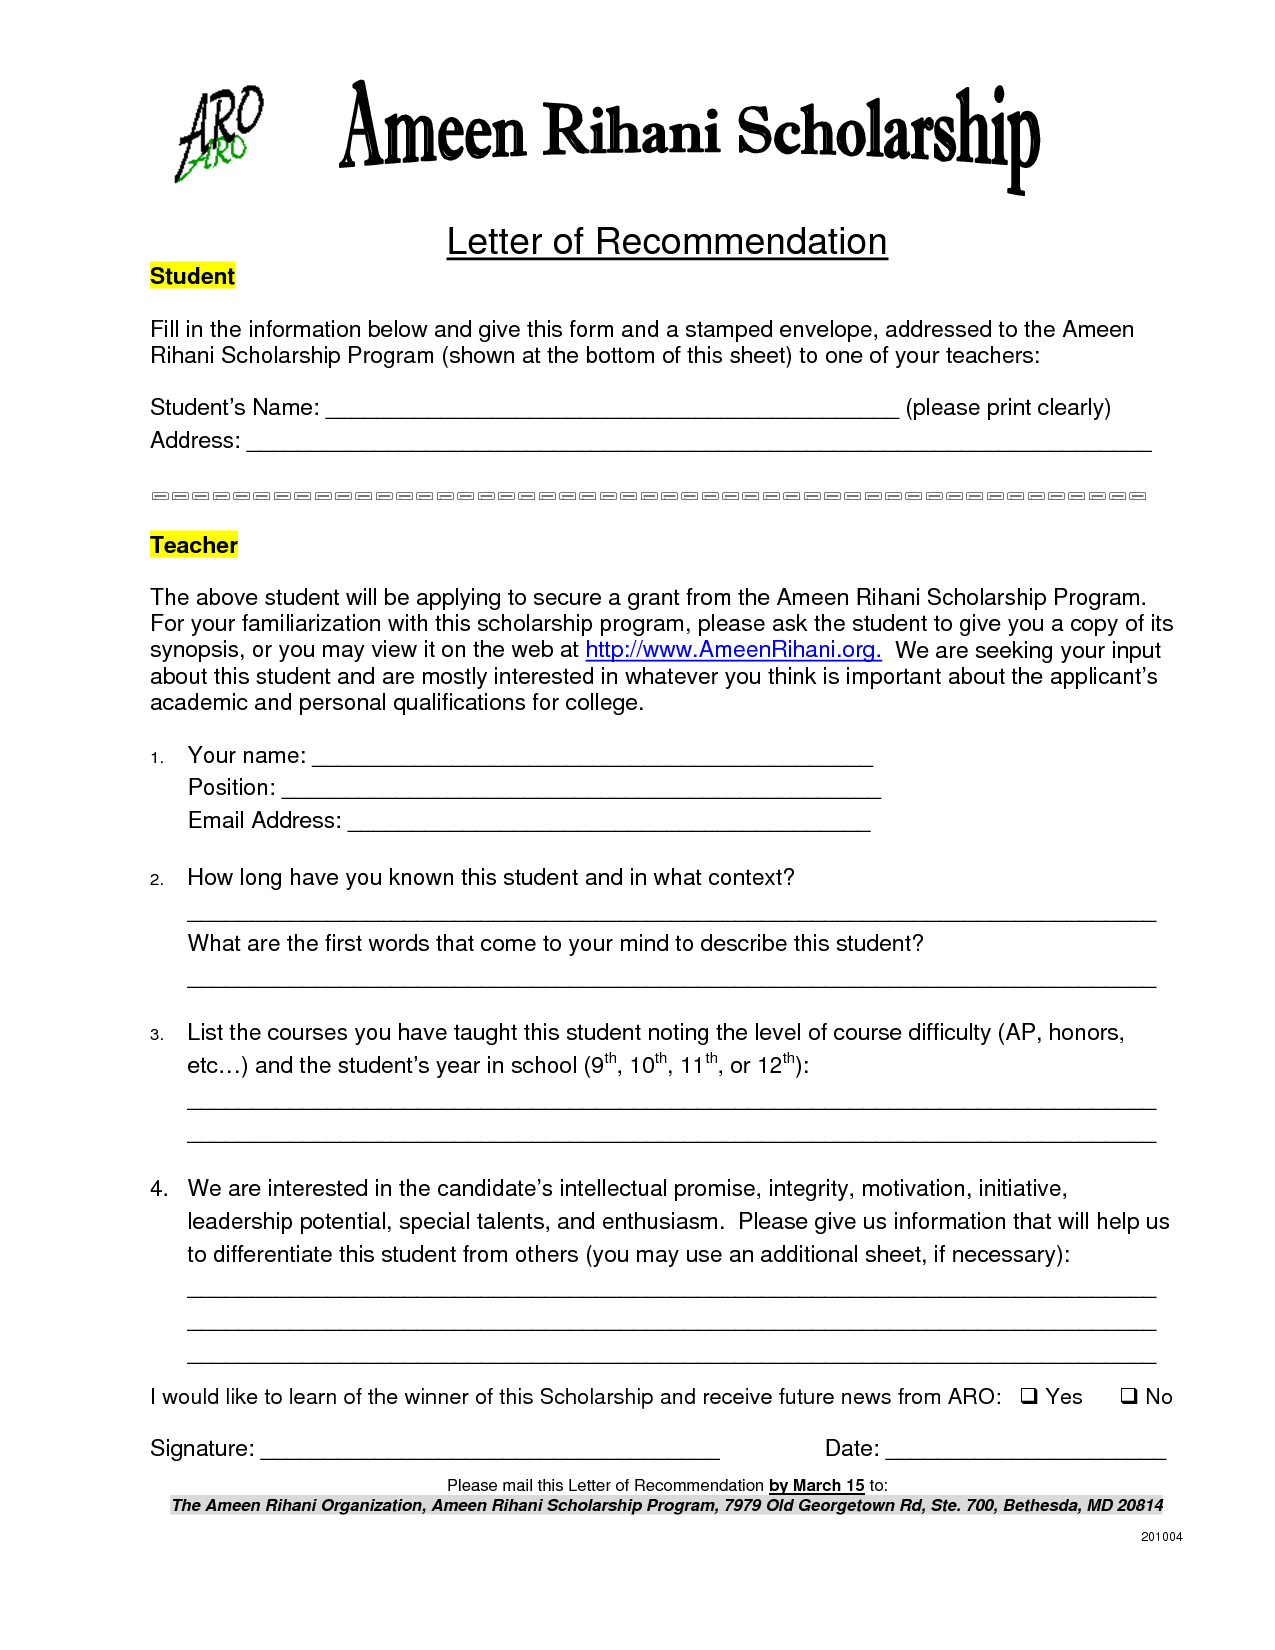 Letter of recommendation for scholarship bbq grill recipes 5 recommendation letter for student scholarship pdf spiritdancerdesigns Images